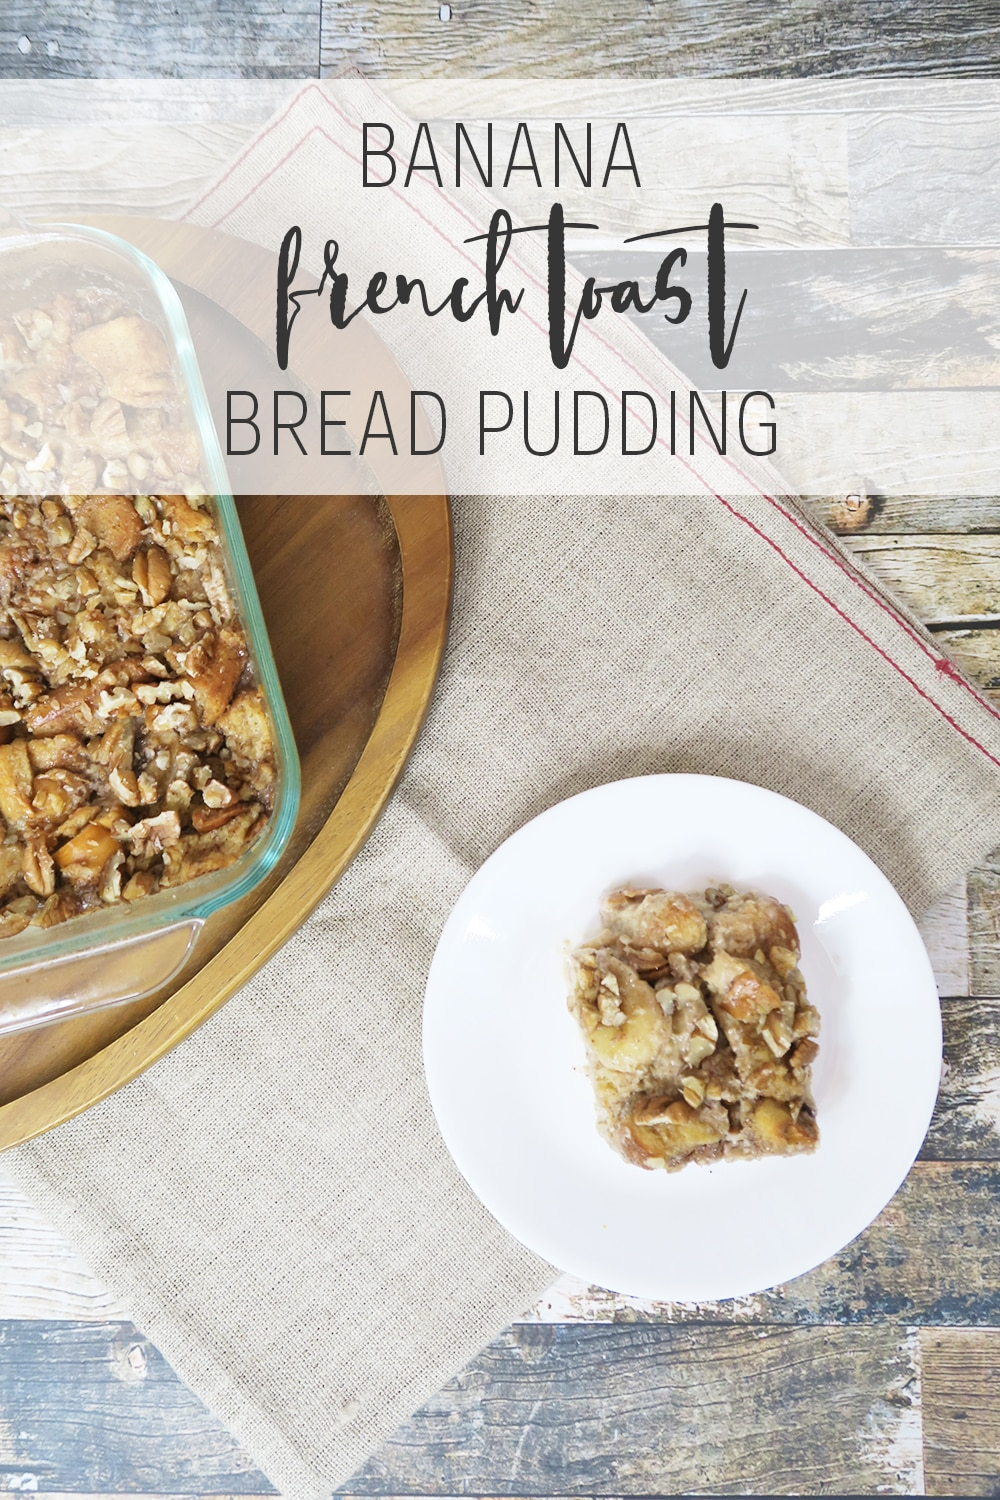 This banana french toast bread pudding recipe is a sweet combo of two delicious dishes. Great for breakfast or a side, it's a dish you won't want to miss!